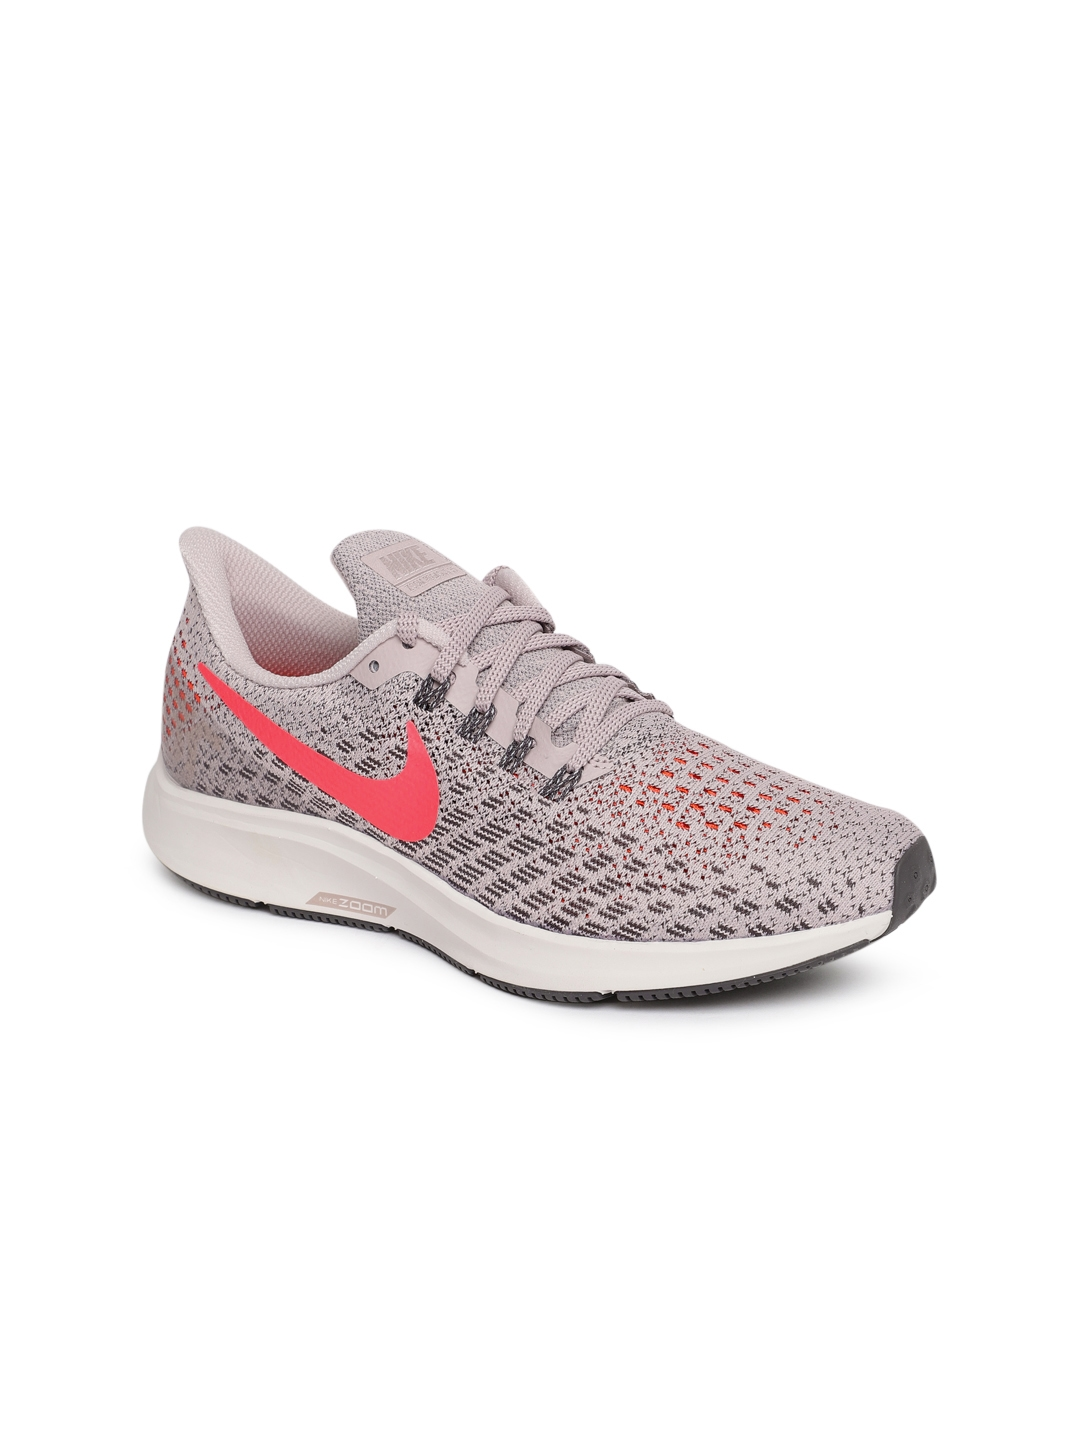 6b917b1129747 Buy Nike Womens Air Zoom Pegasus 35 Running Shoes - Sports Shoes for ...